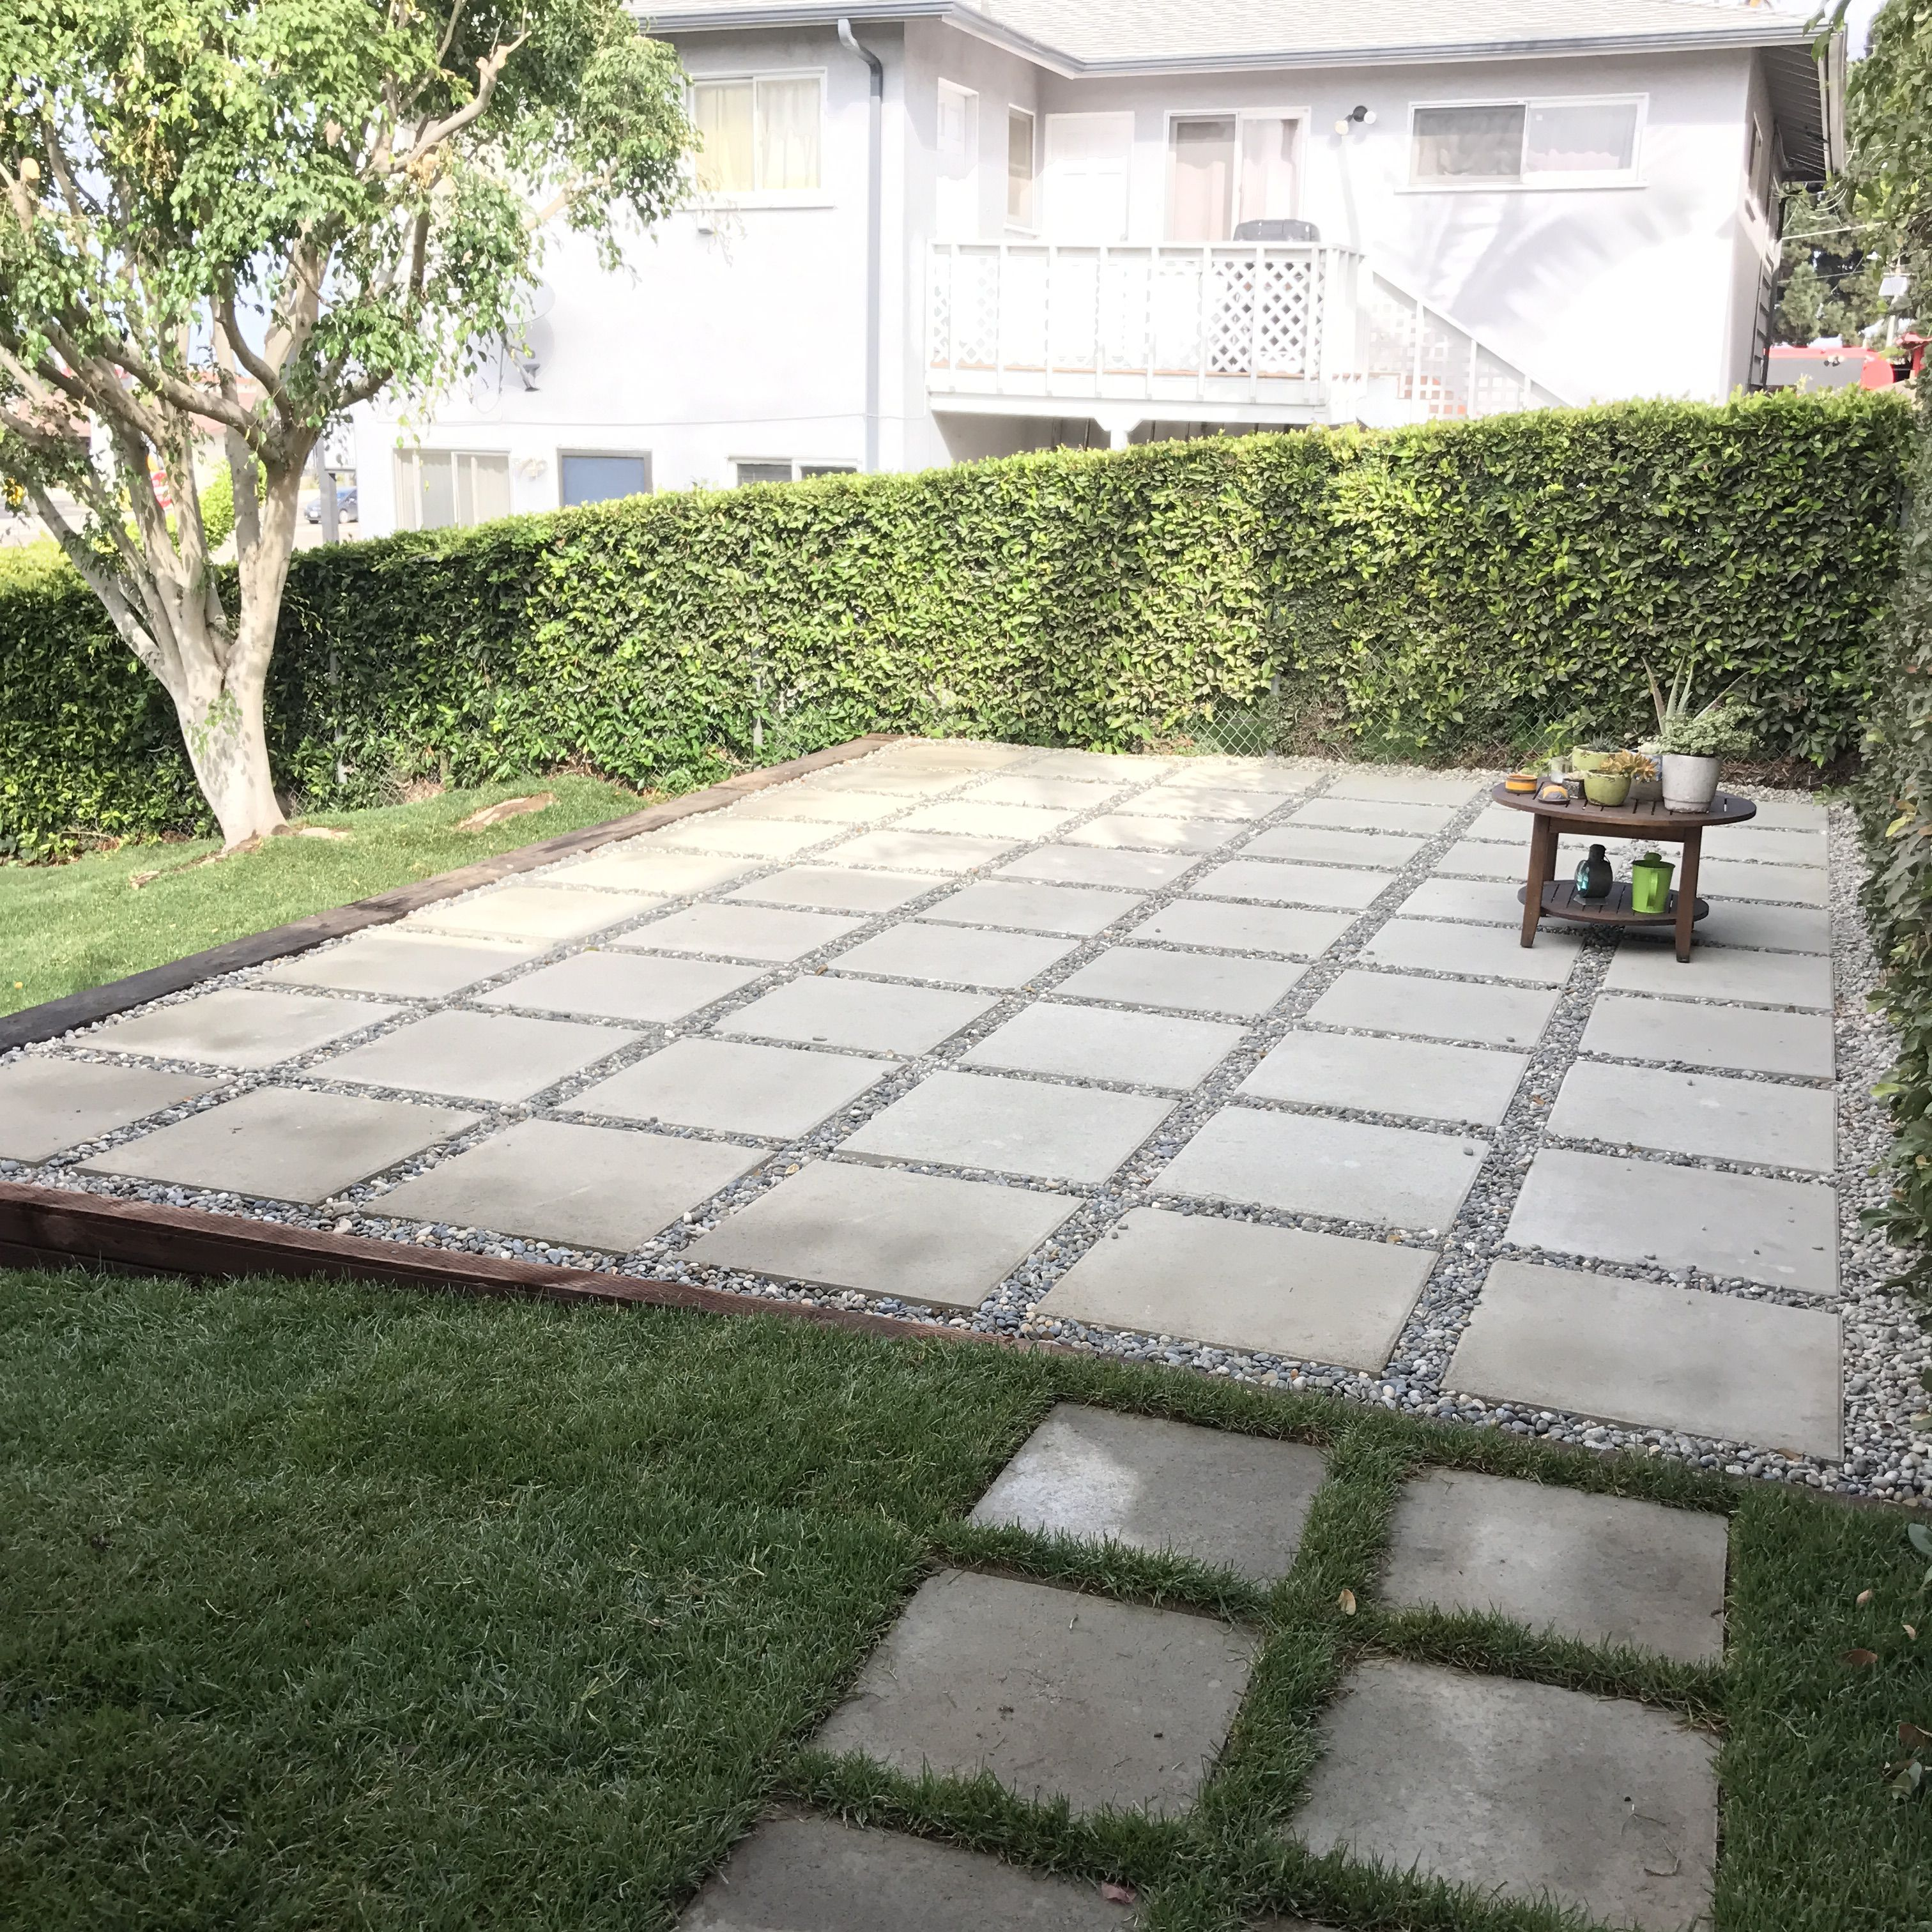 large pavers used to create patio in backyard quick and easy